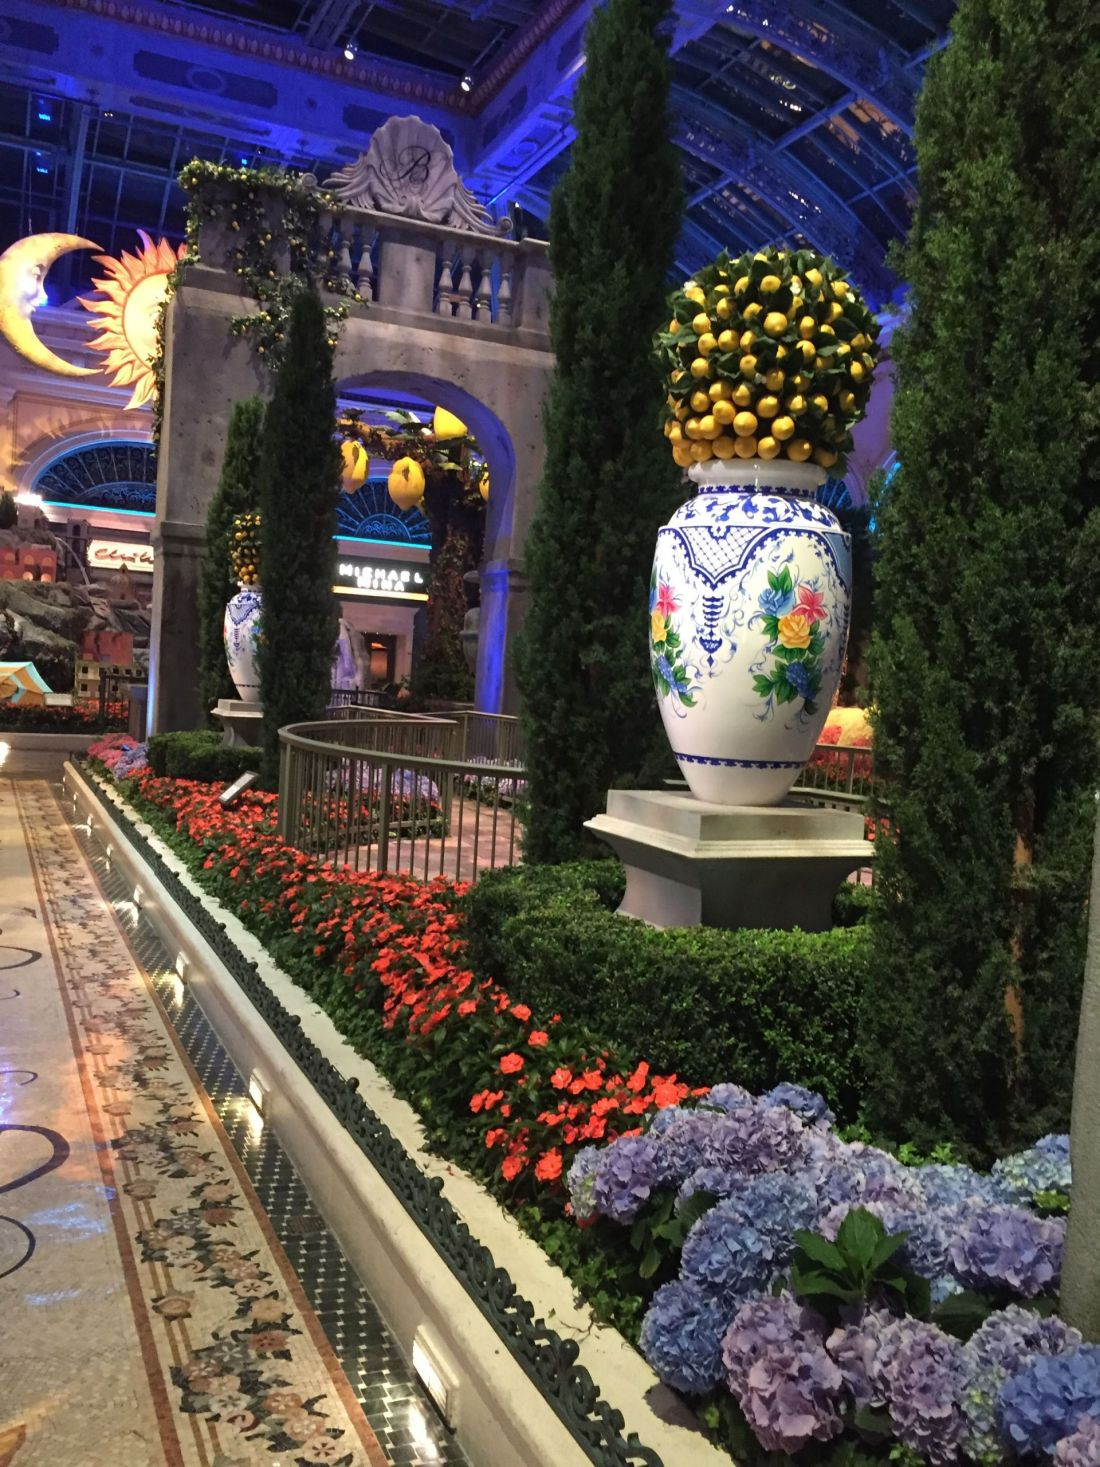 Bellagio Gardens at night